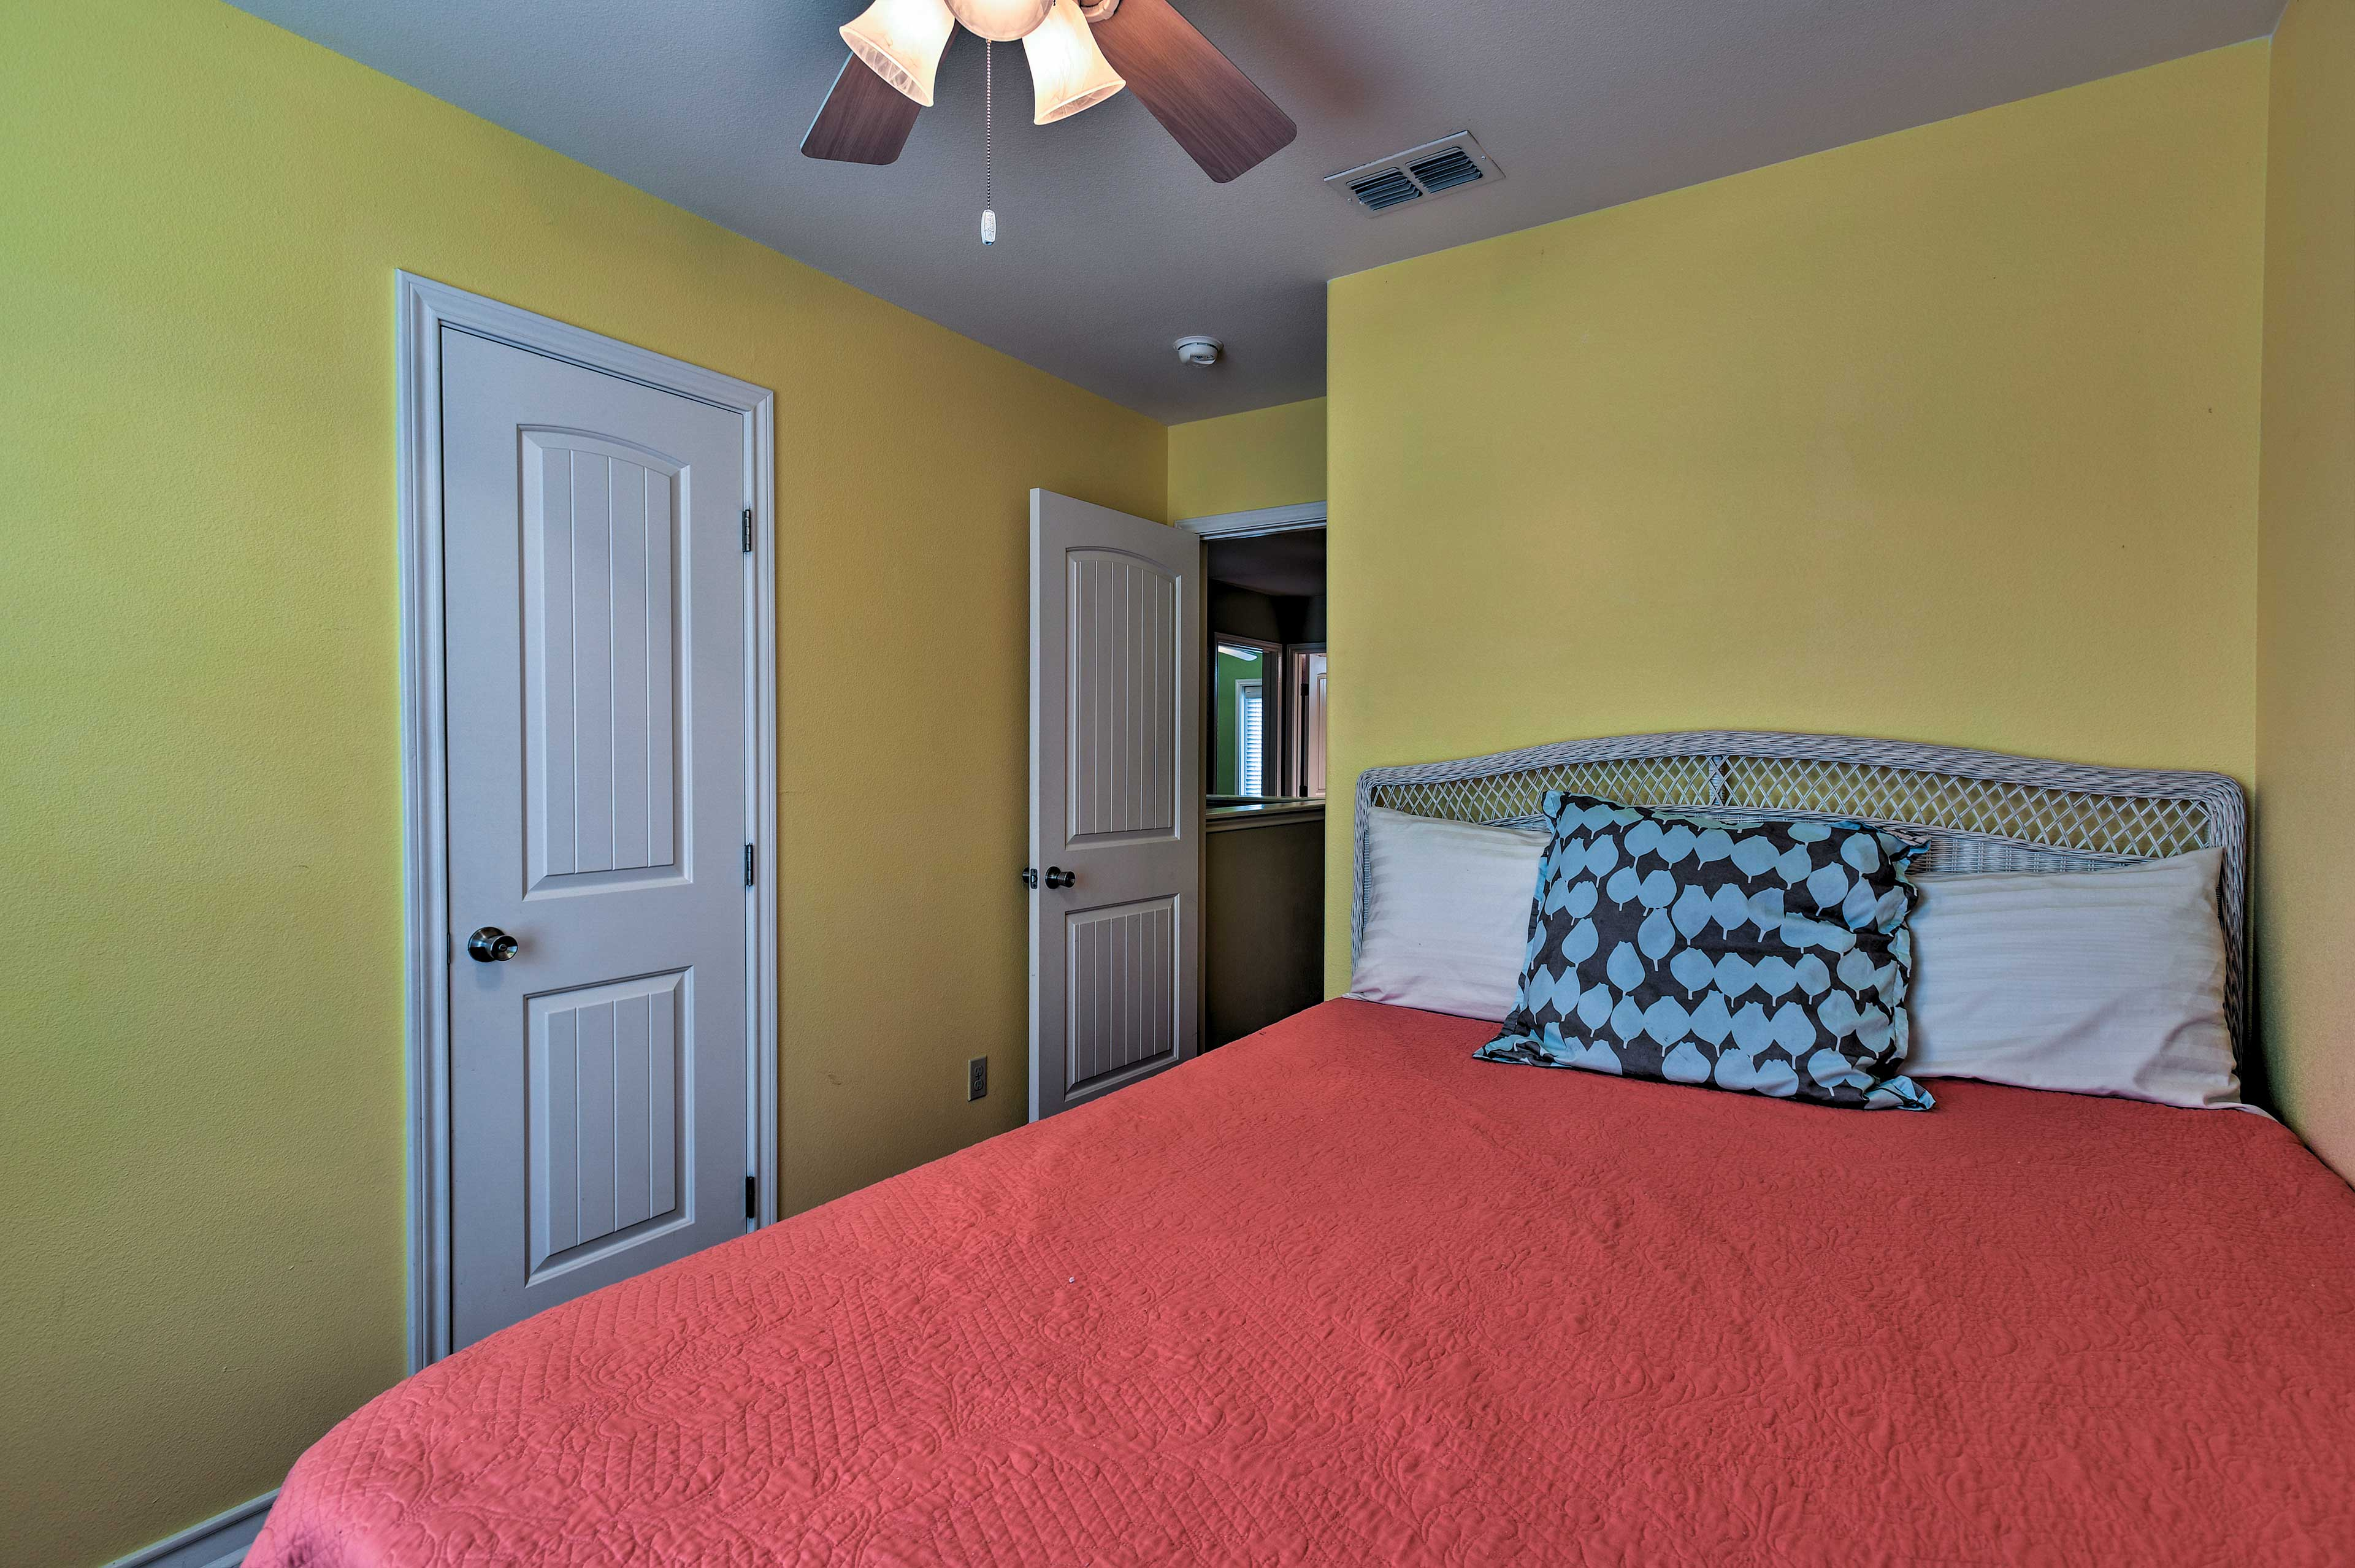 The bedrooms are completely cozy and private.